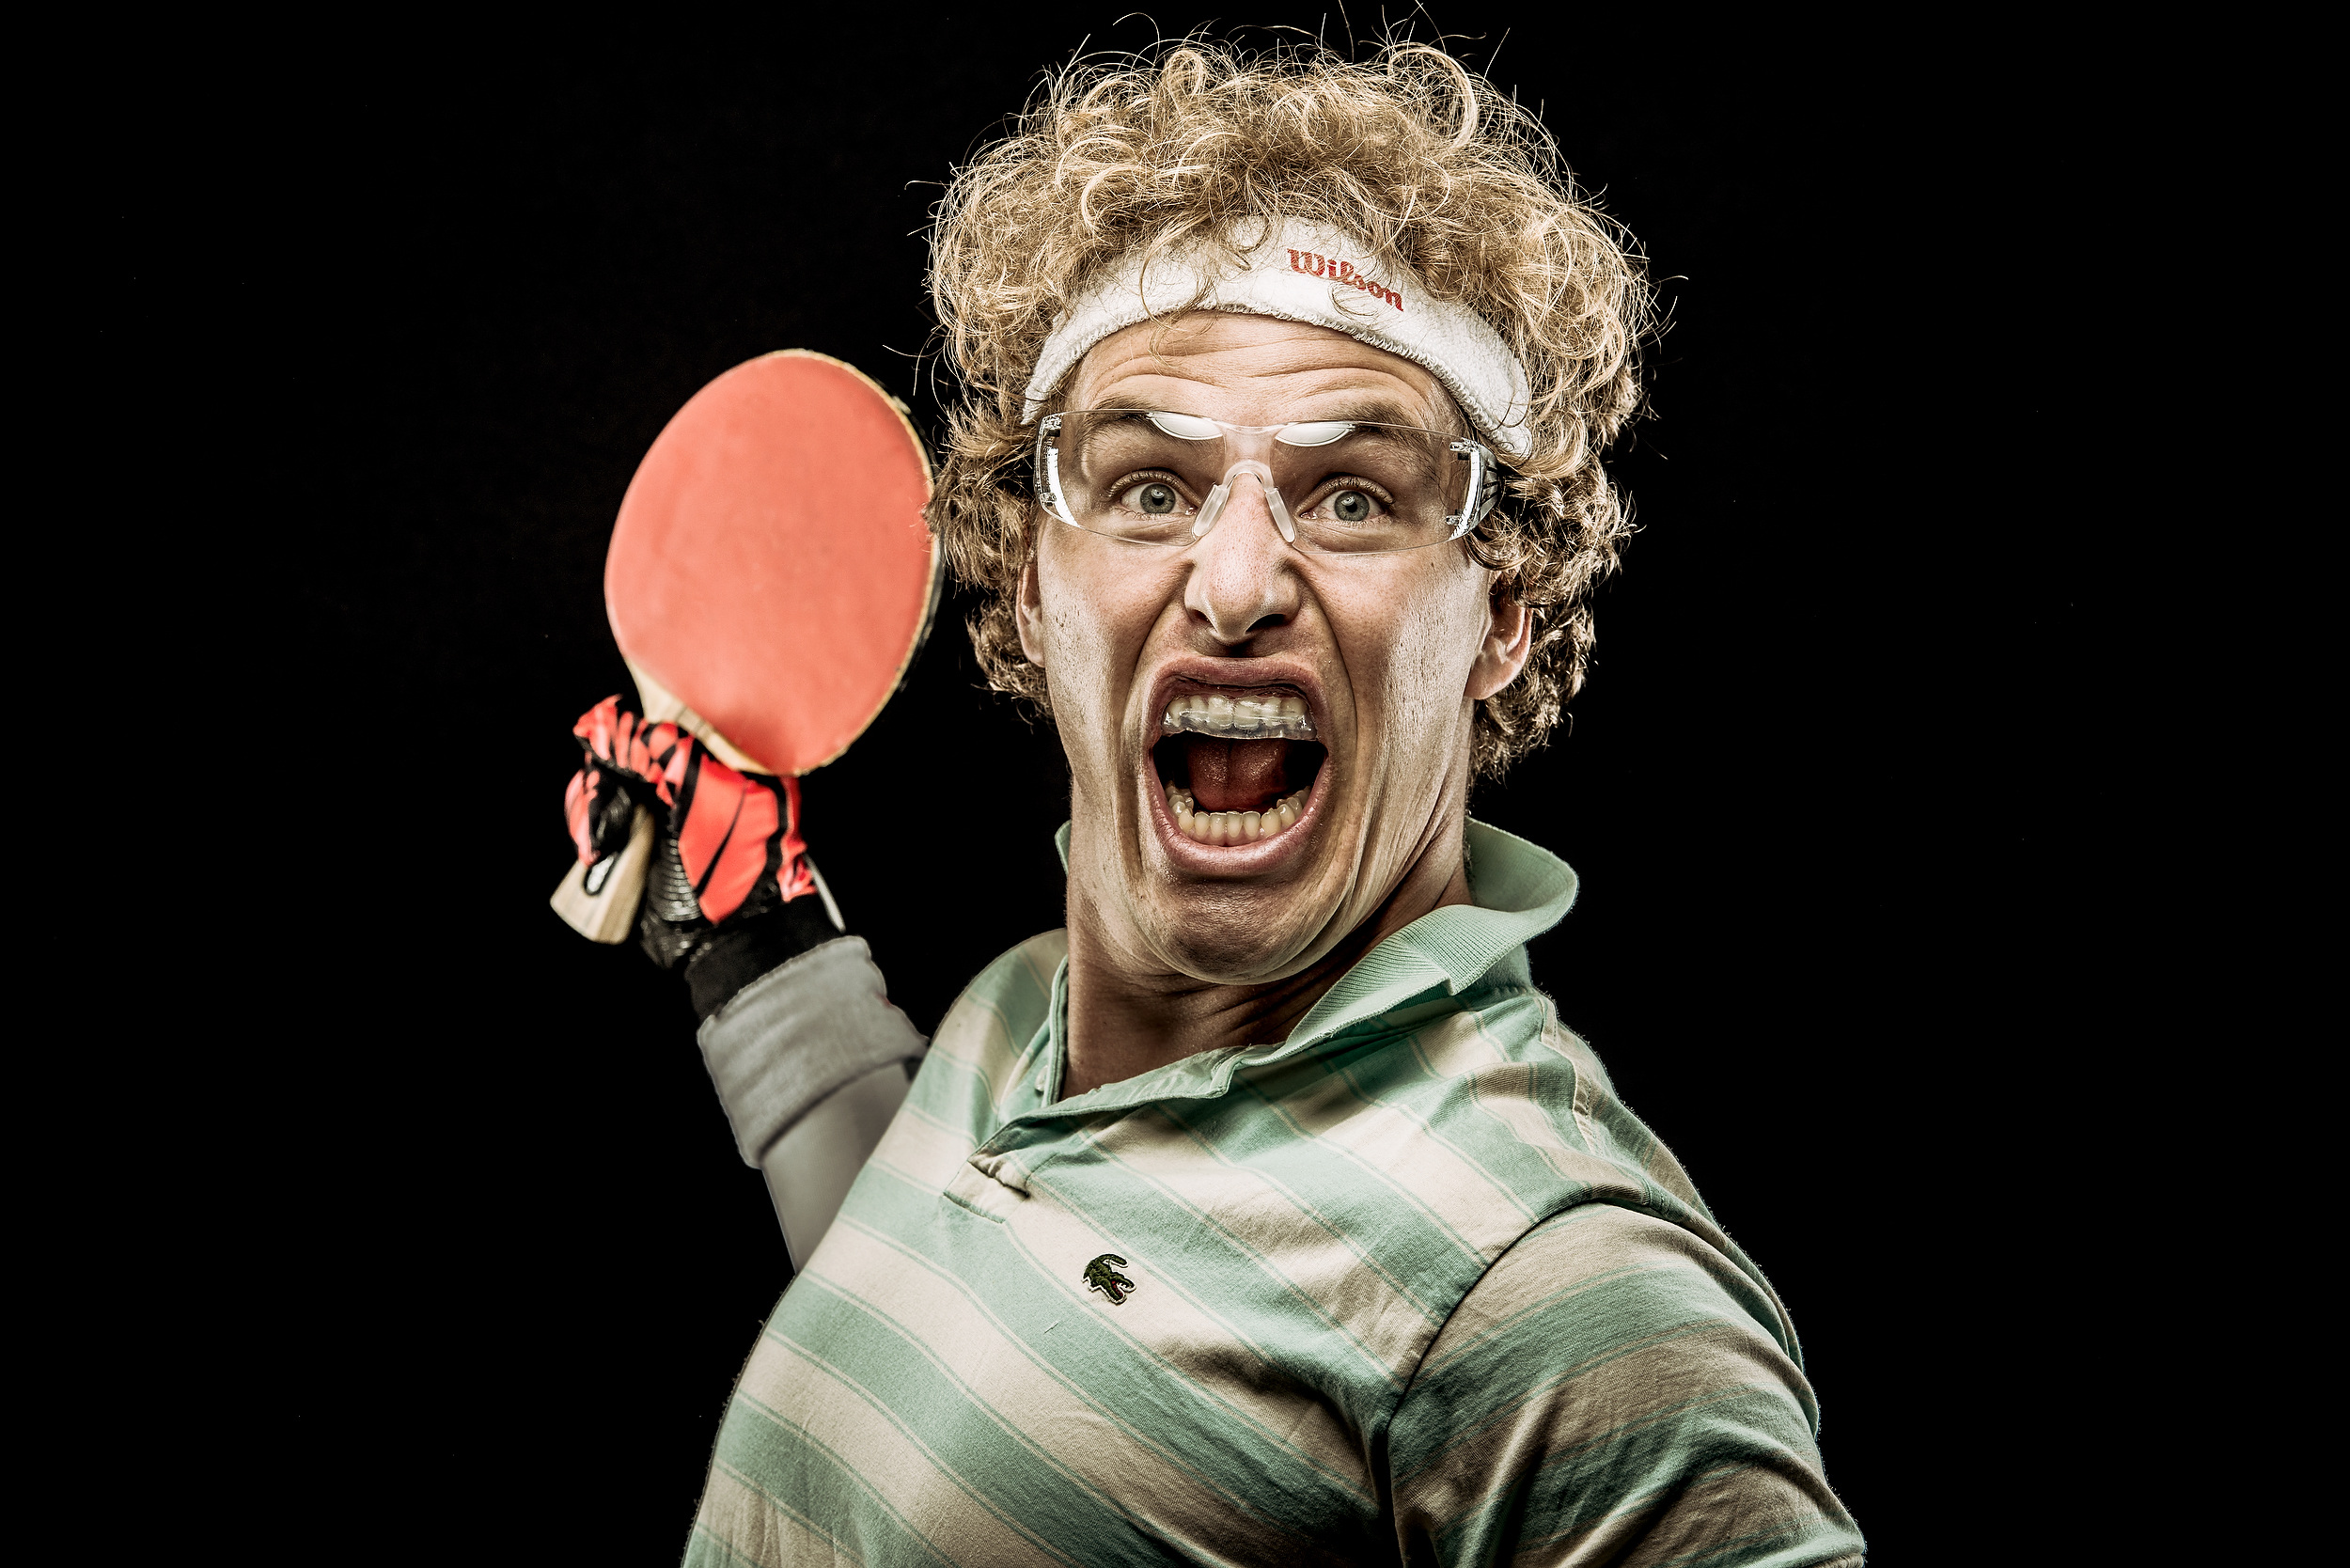 Crazy ping pong player portrait